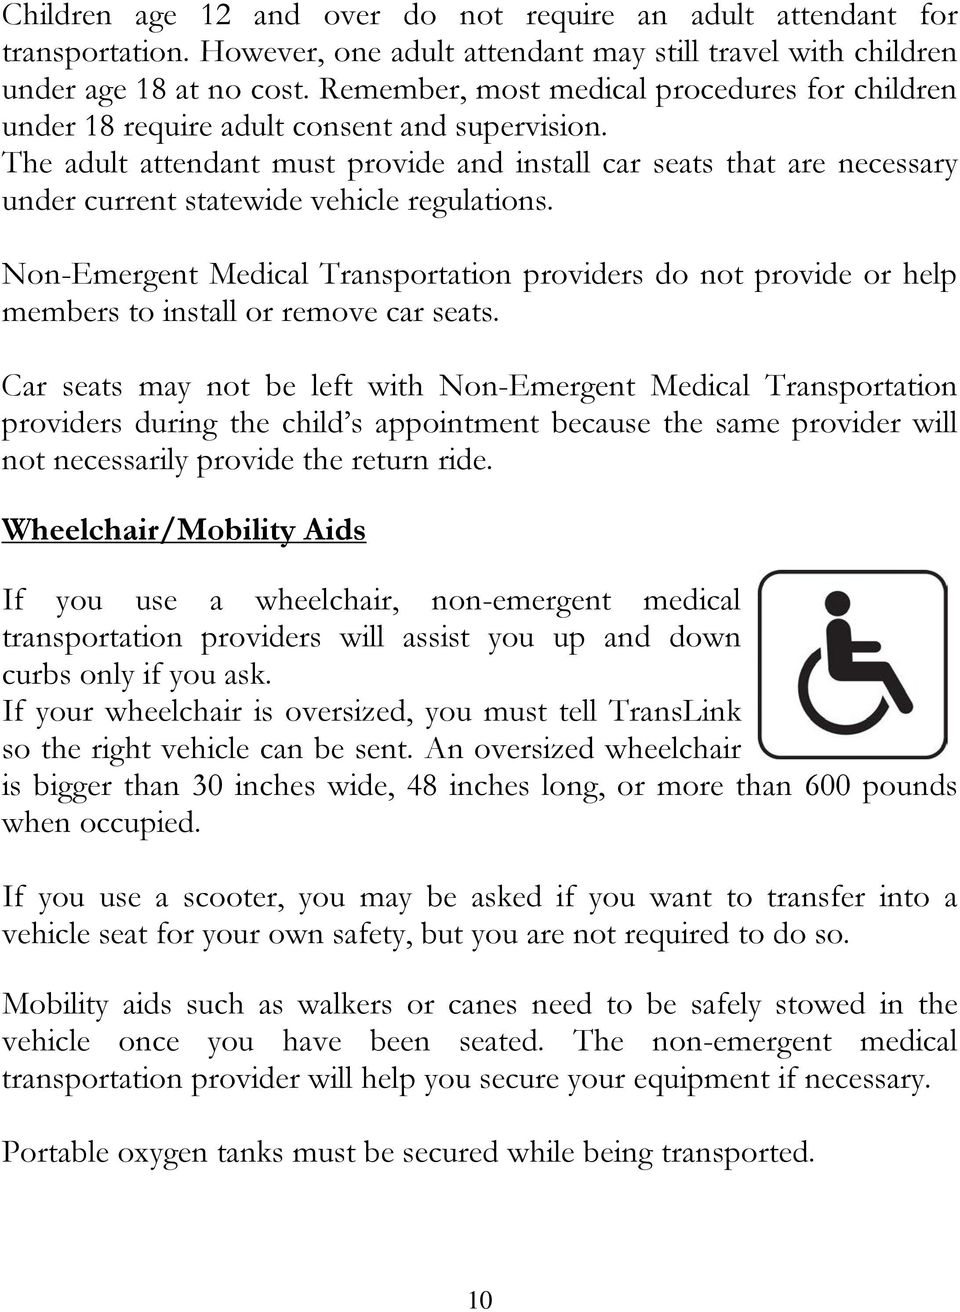 The adult attendant must provide and install car seats that are necessary under current statewide vehicle regulations.